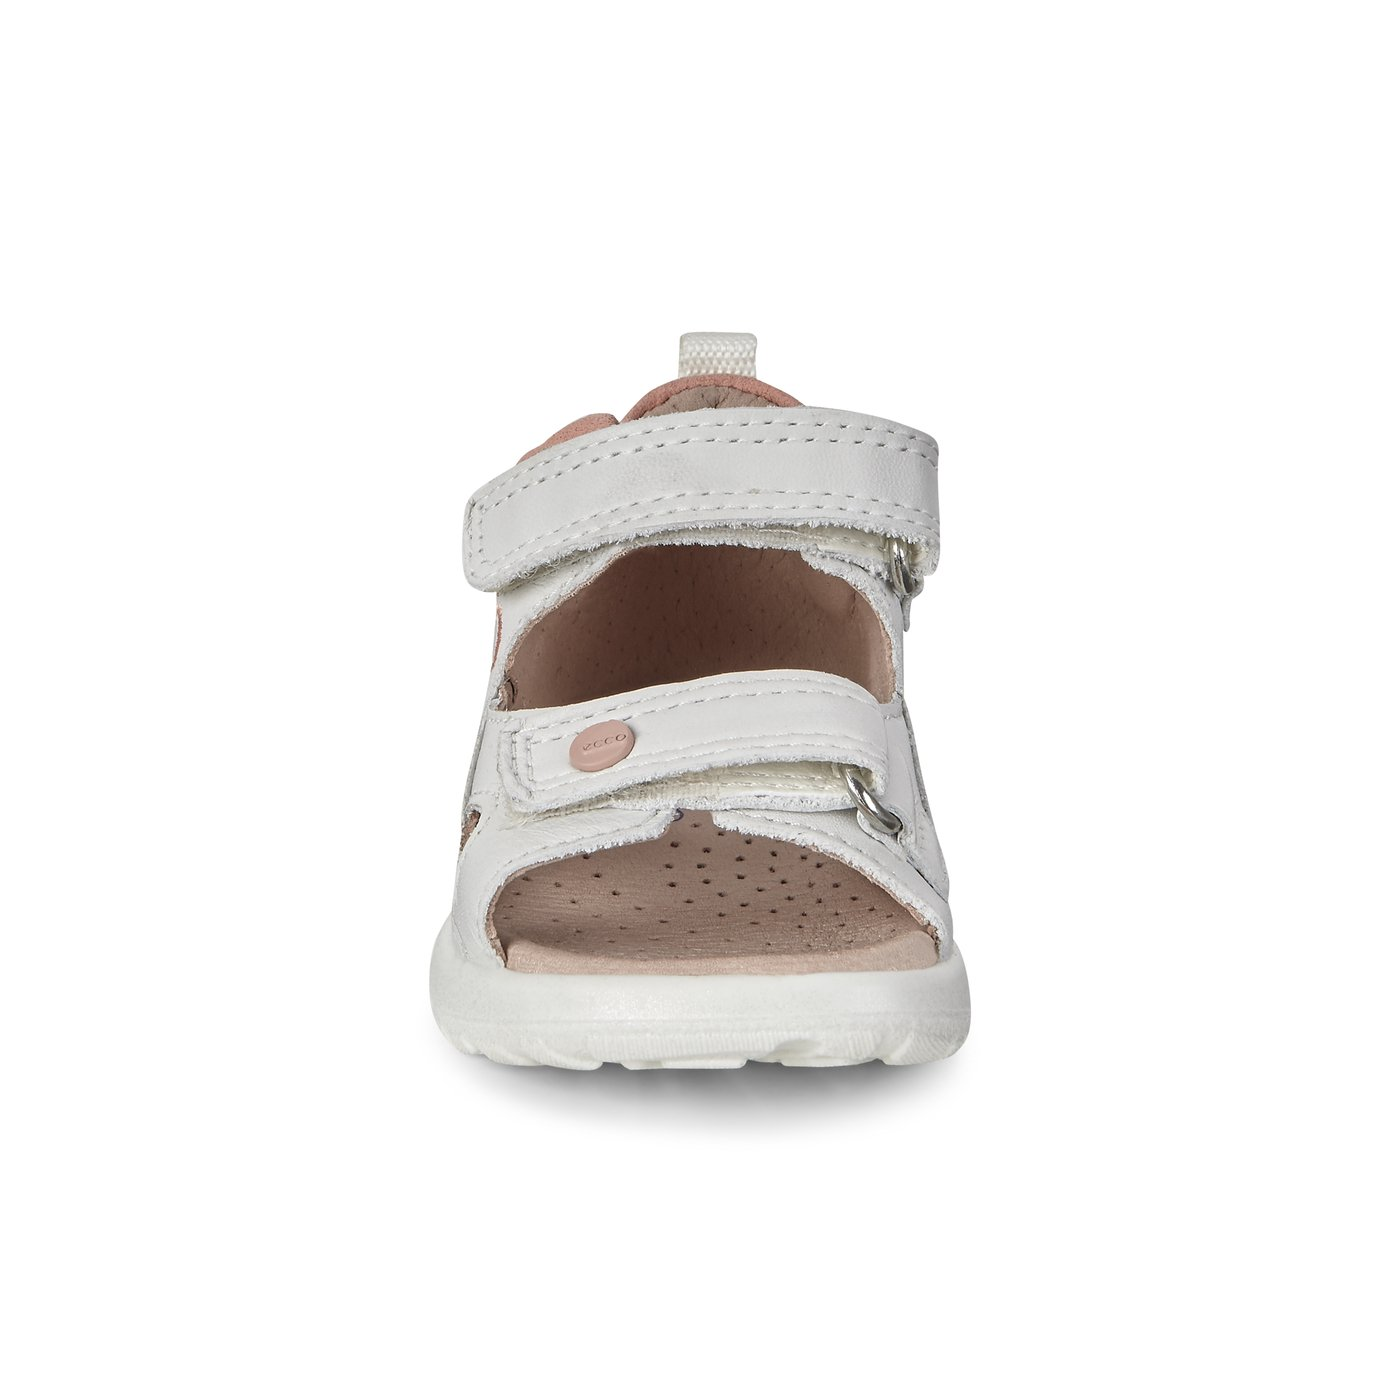 ECCO Peekaboo Infants Sandal